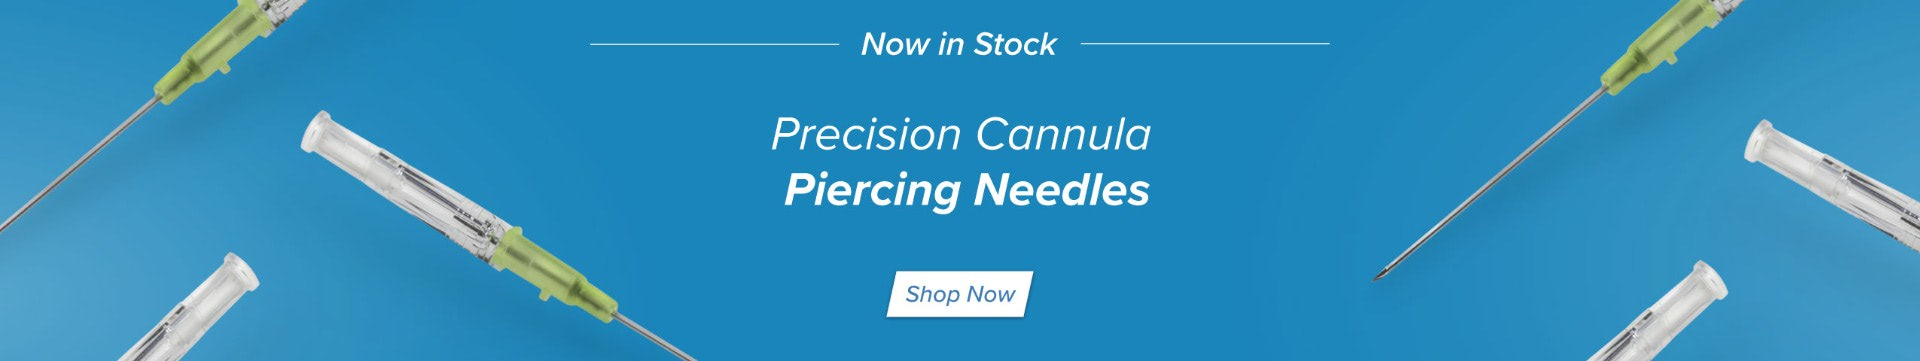 Cannula Piercing Needles